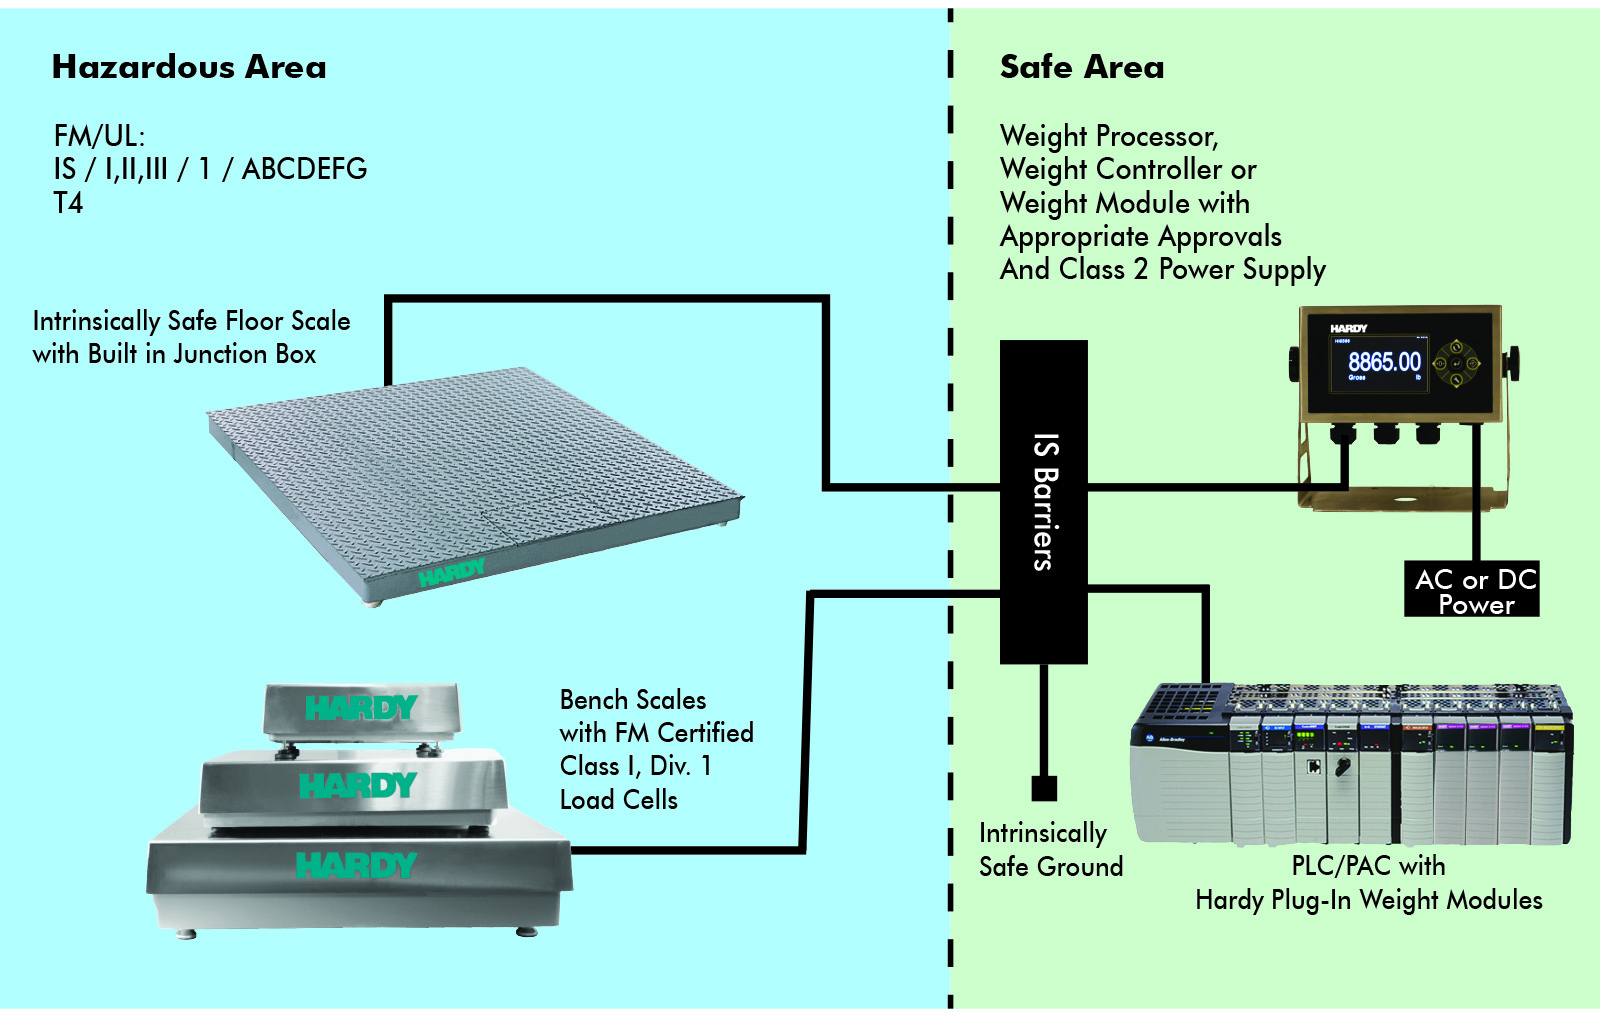 Hardy Process Solutions Products Weighing For Intrinsically Safe Wiring Floor Bench Scale System Configuration A Hazardous Area Use Or Scales With Built In Summing Cards And Is